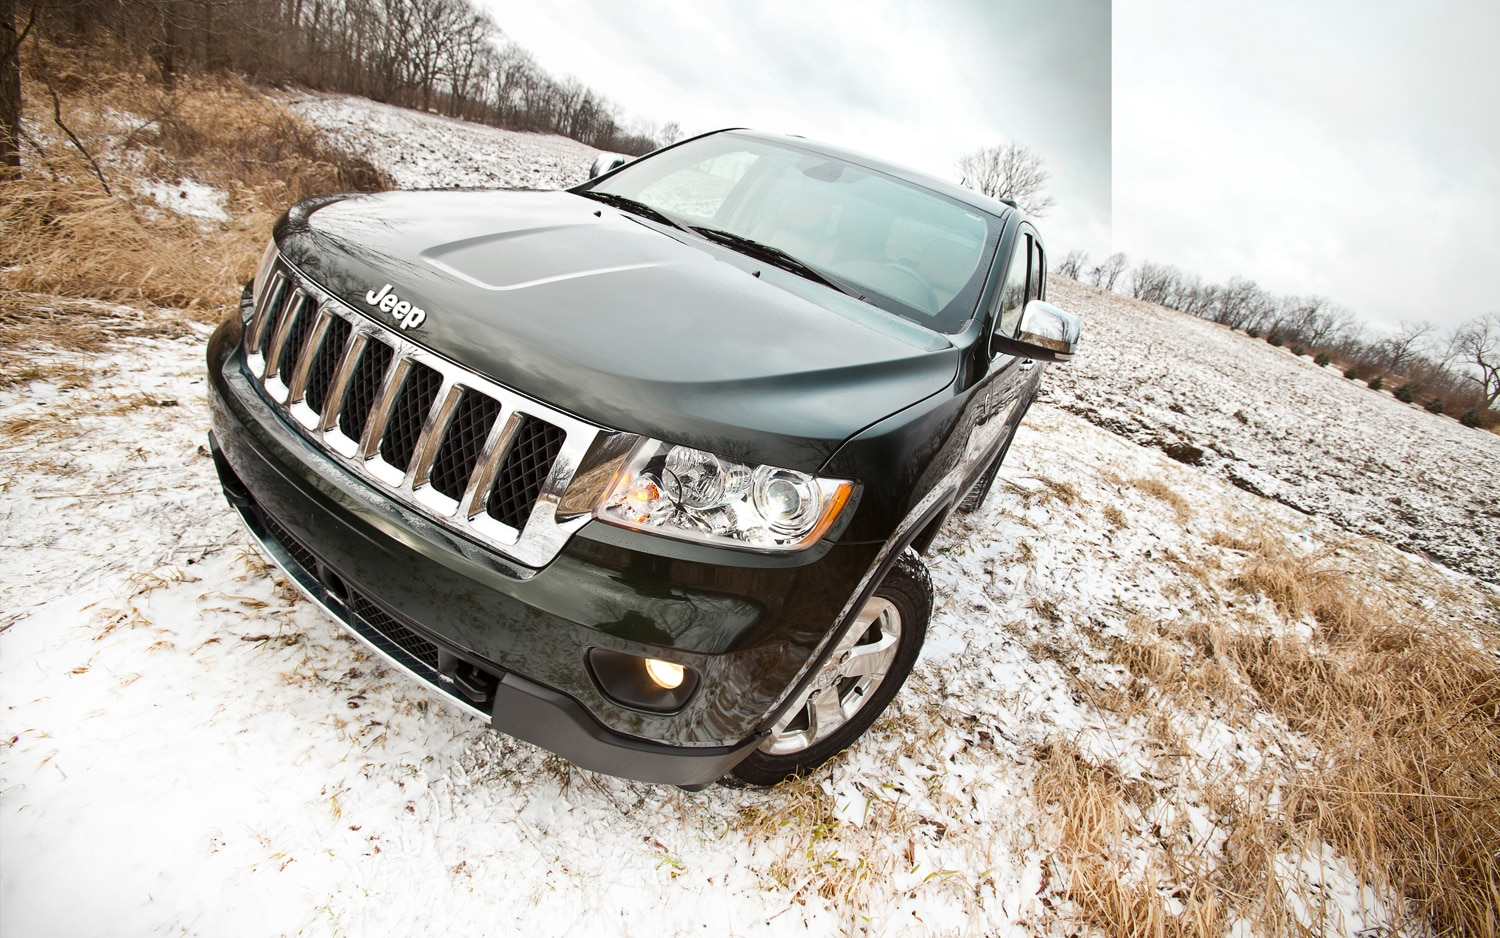 2011 Jeep Grand Cherokee Front View1